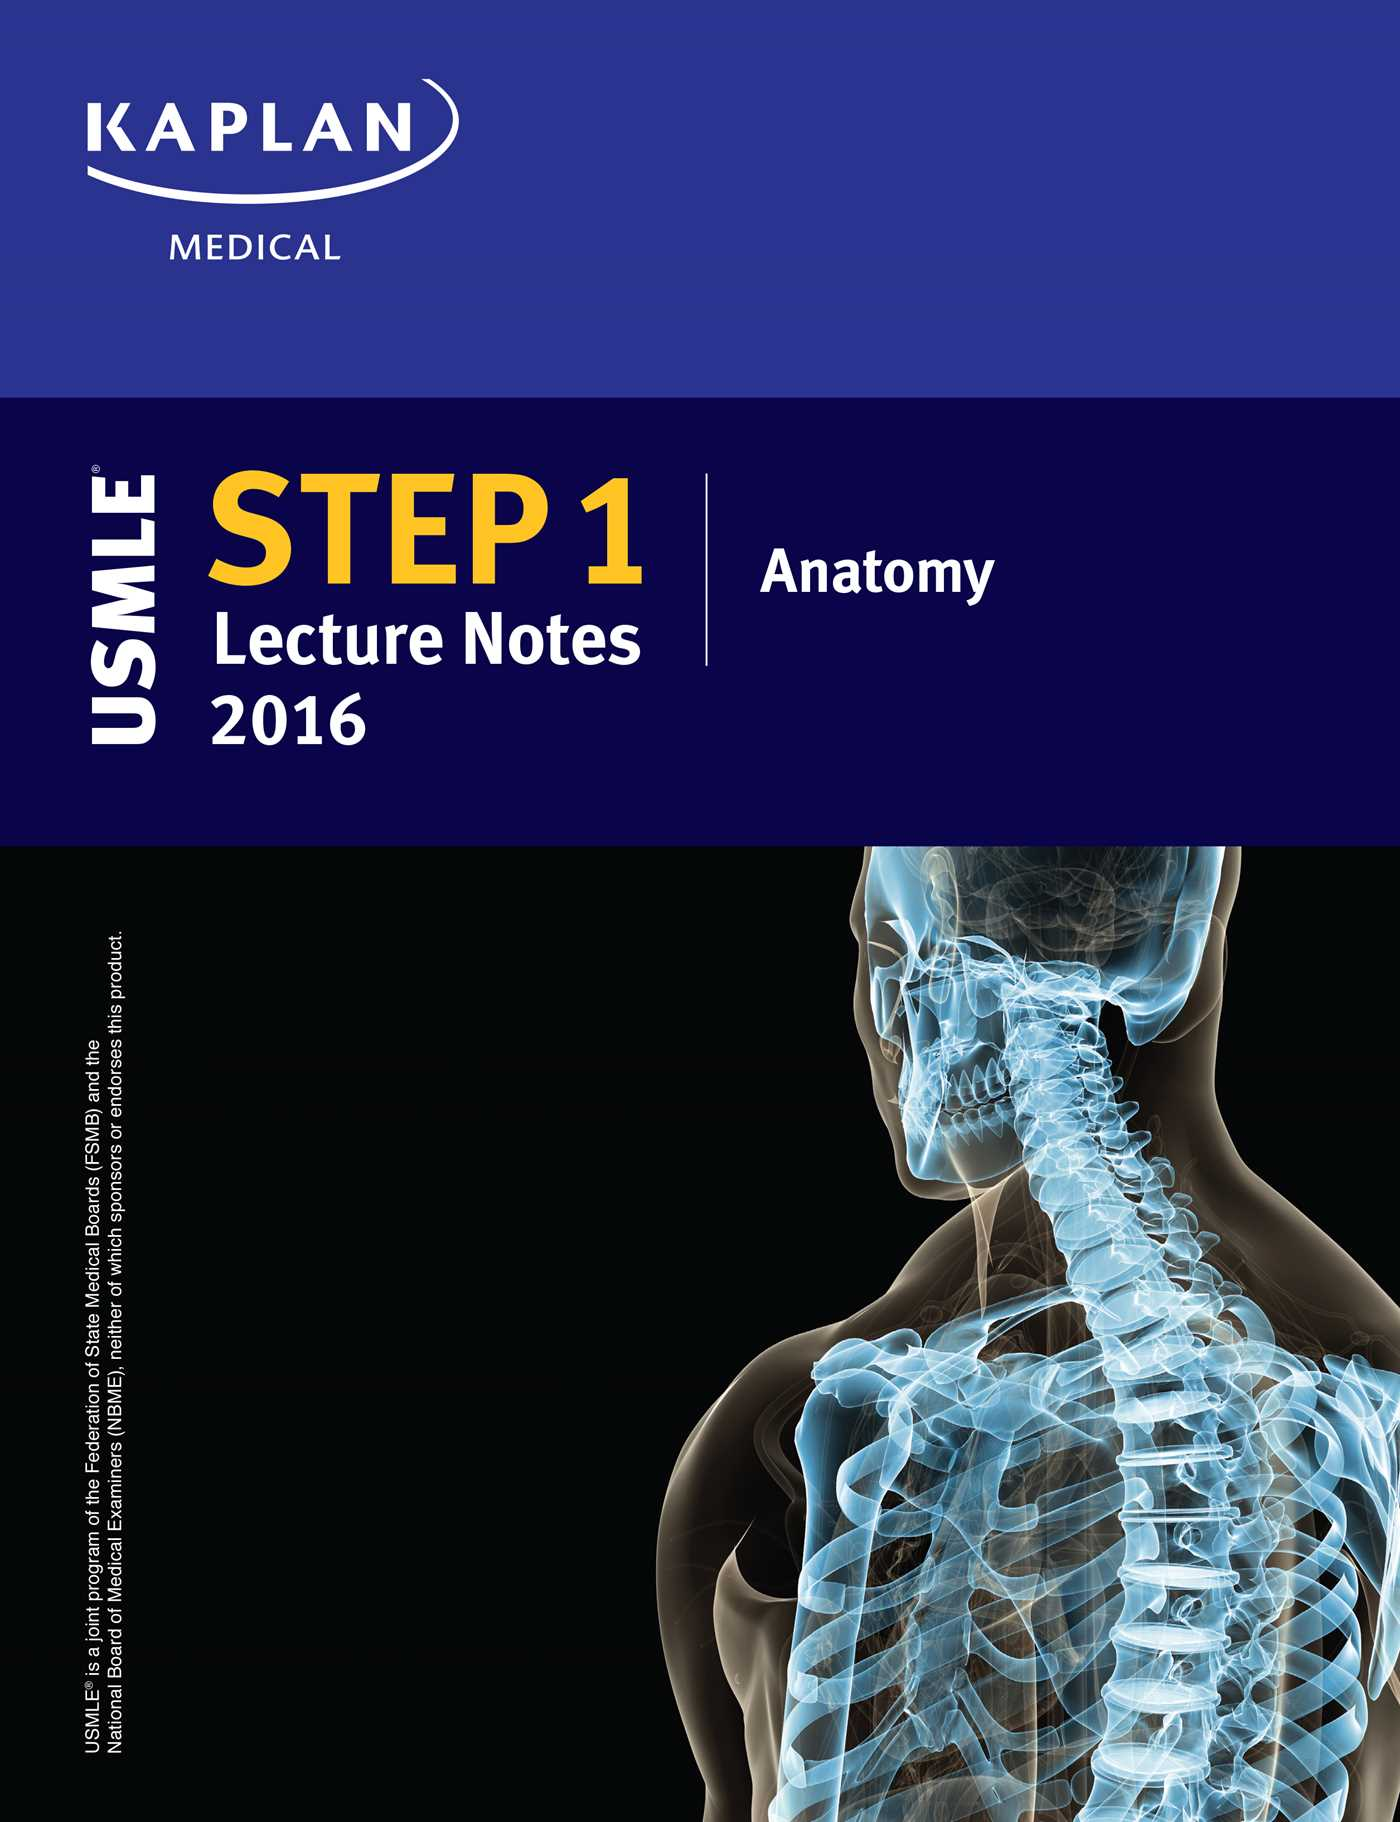 Anatomy notes online 2786421 - follow4more.info